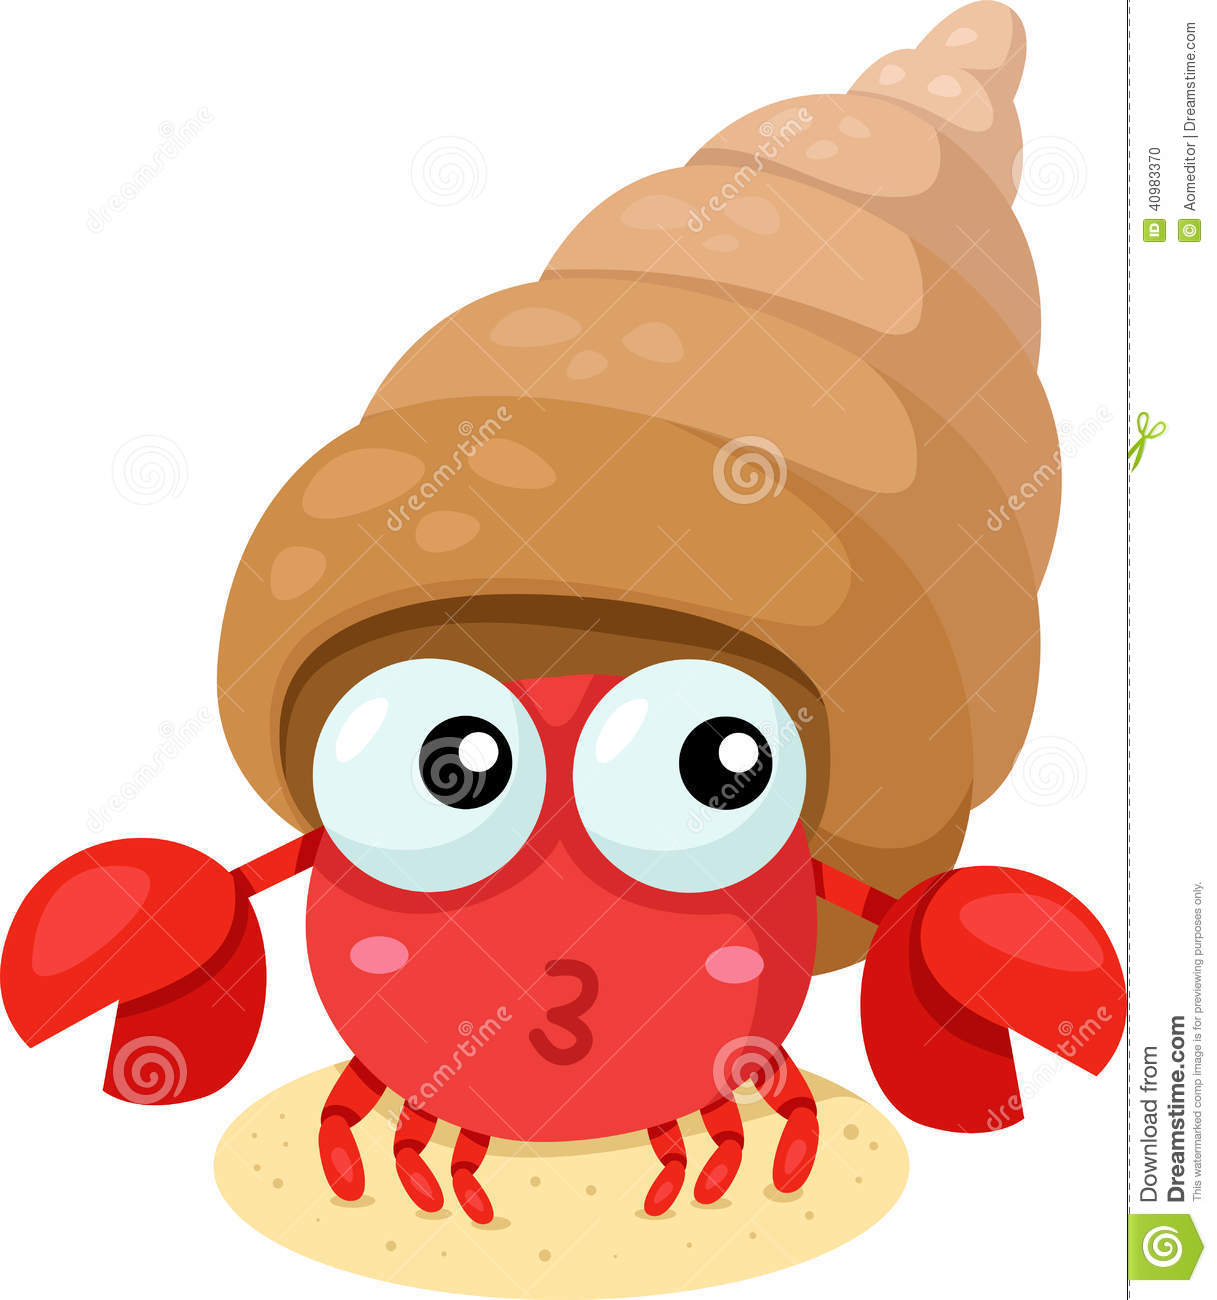 Funny hermit crab cartoon |Funny Animal